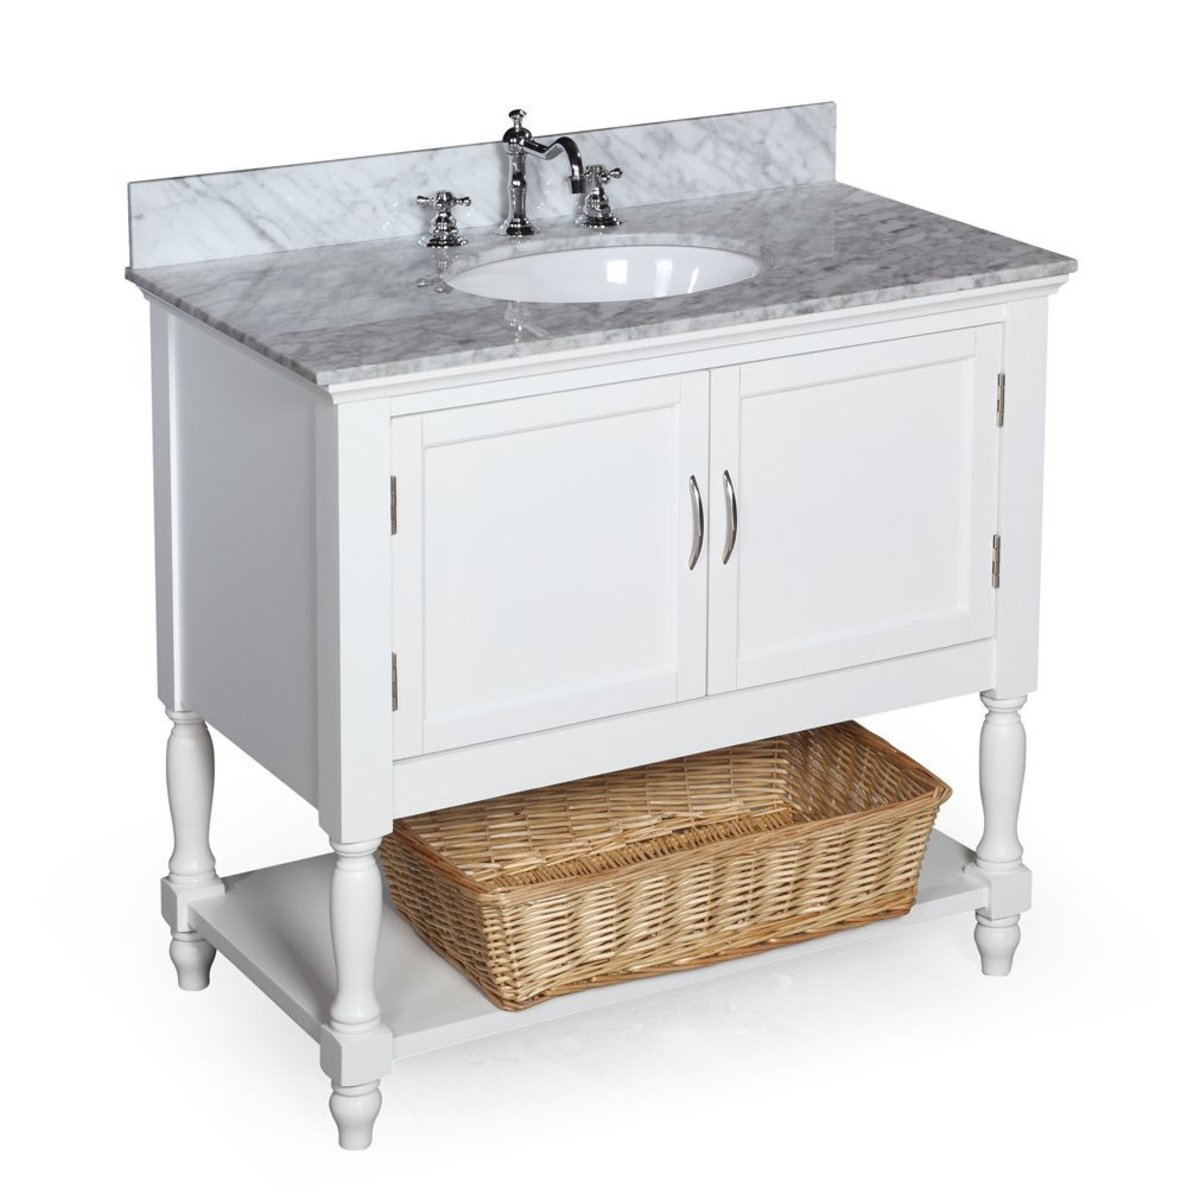 The Beverly 36-inch Bathroom Vanity is a perfect fit for a small bathroom and a tight budget.